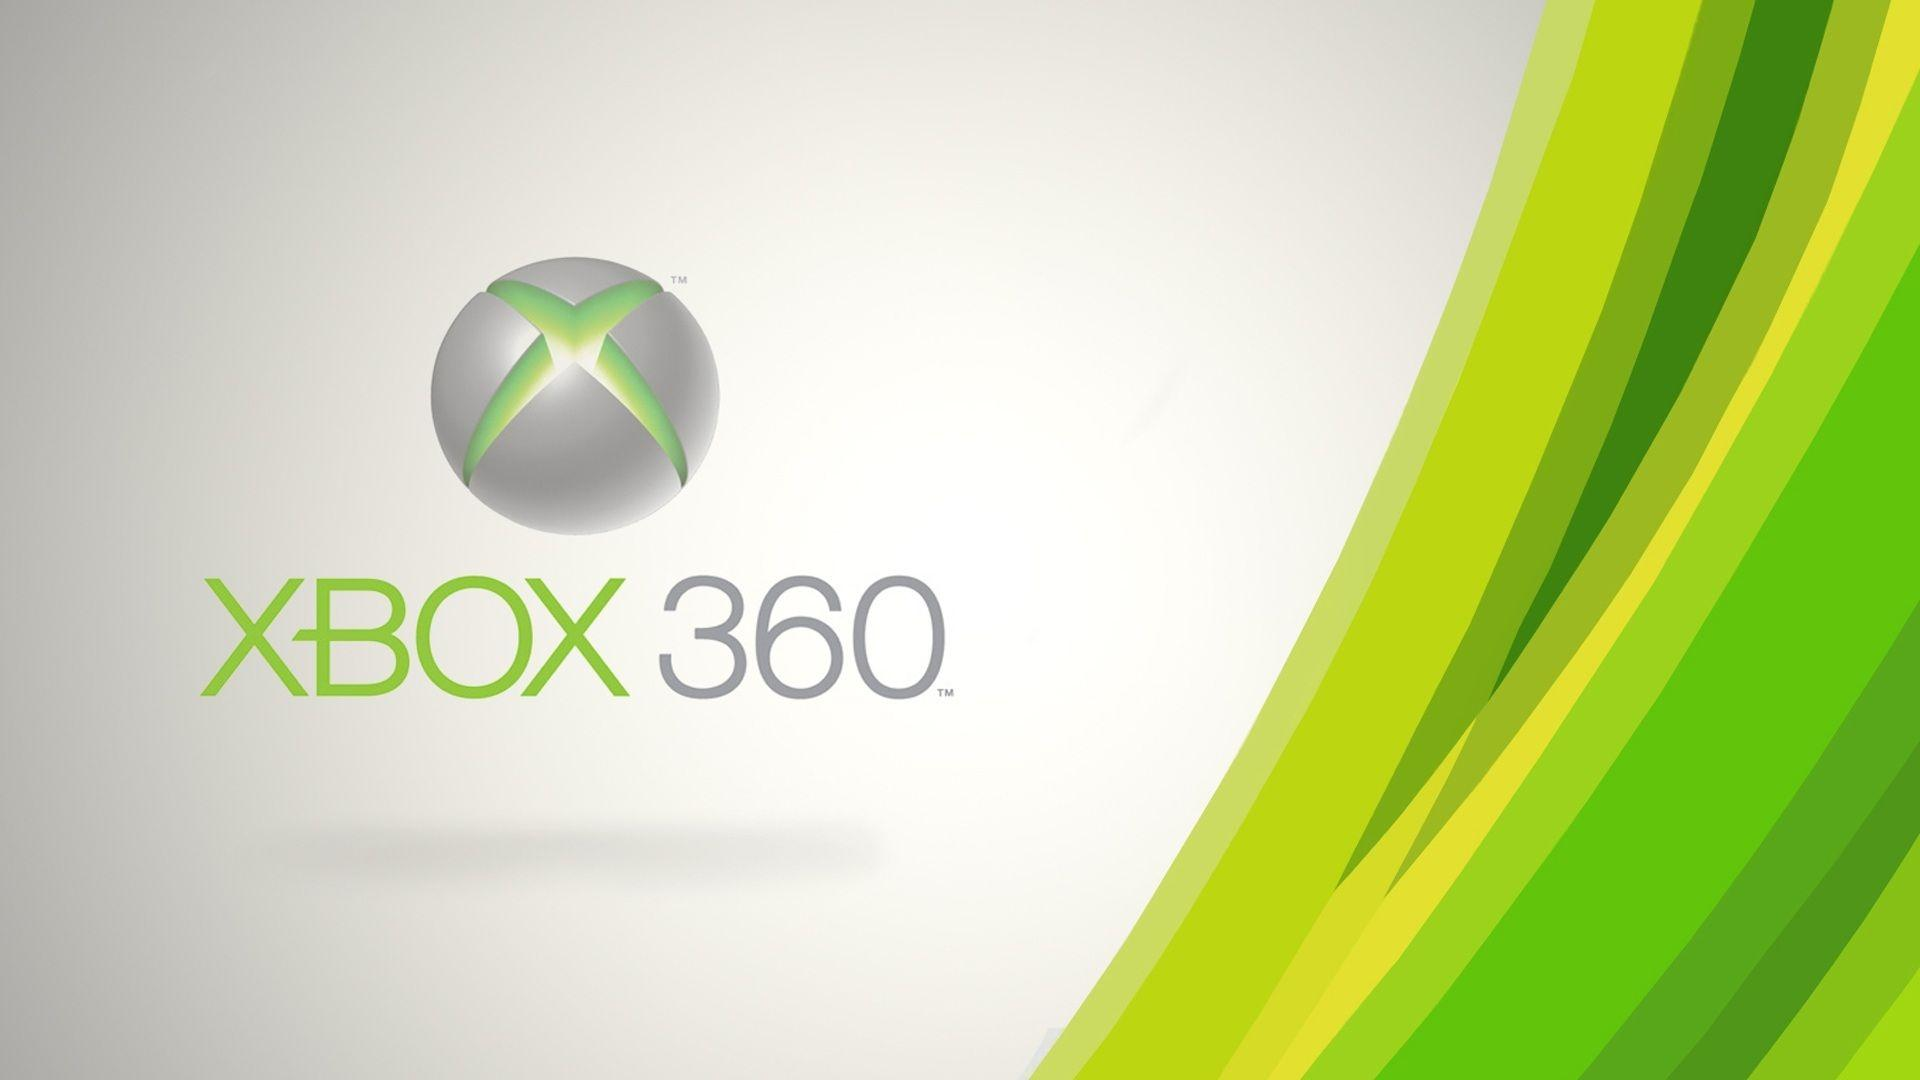 Xbox 360 Logo Hd Wallpapers Wallpaper Cave